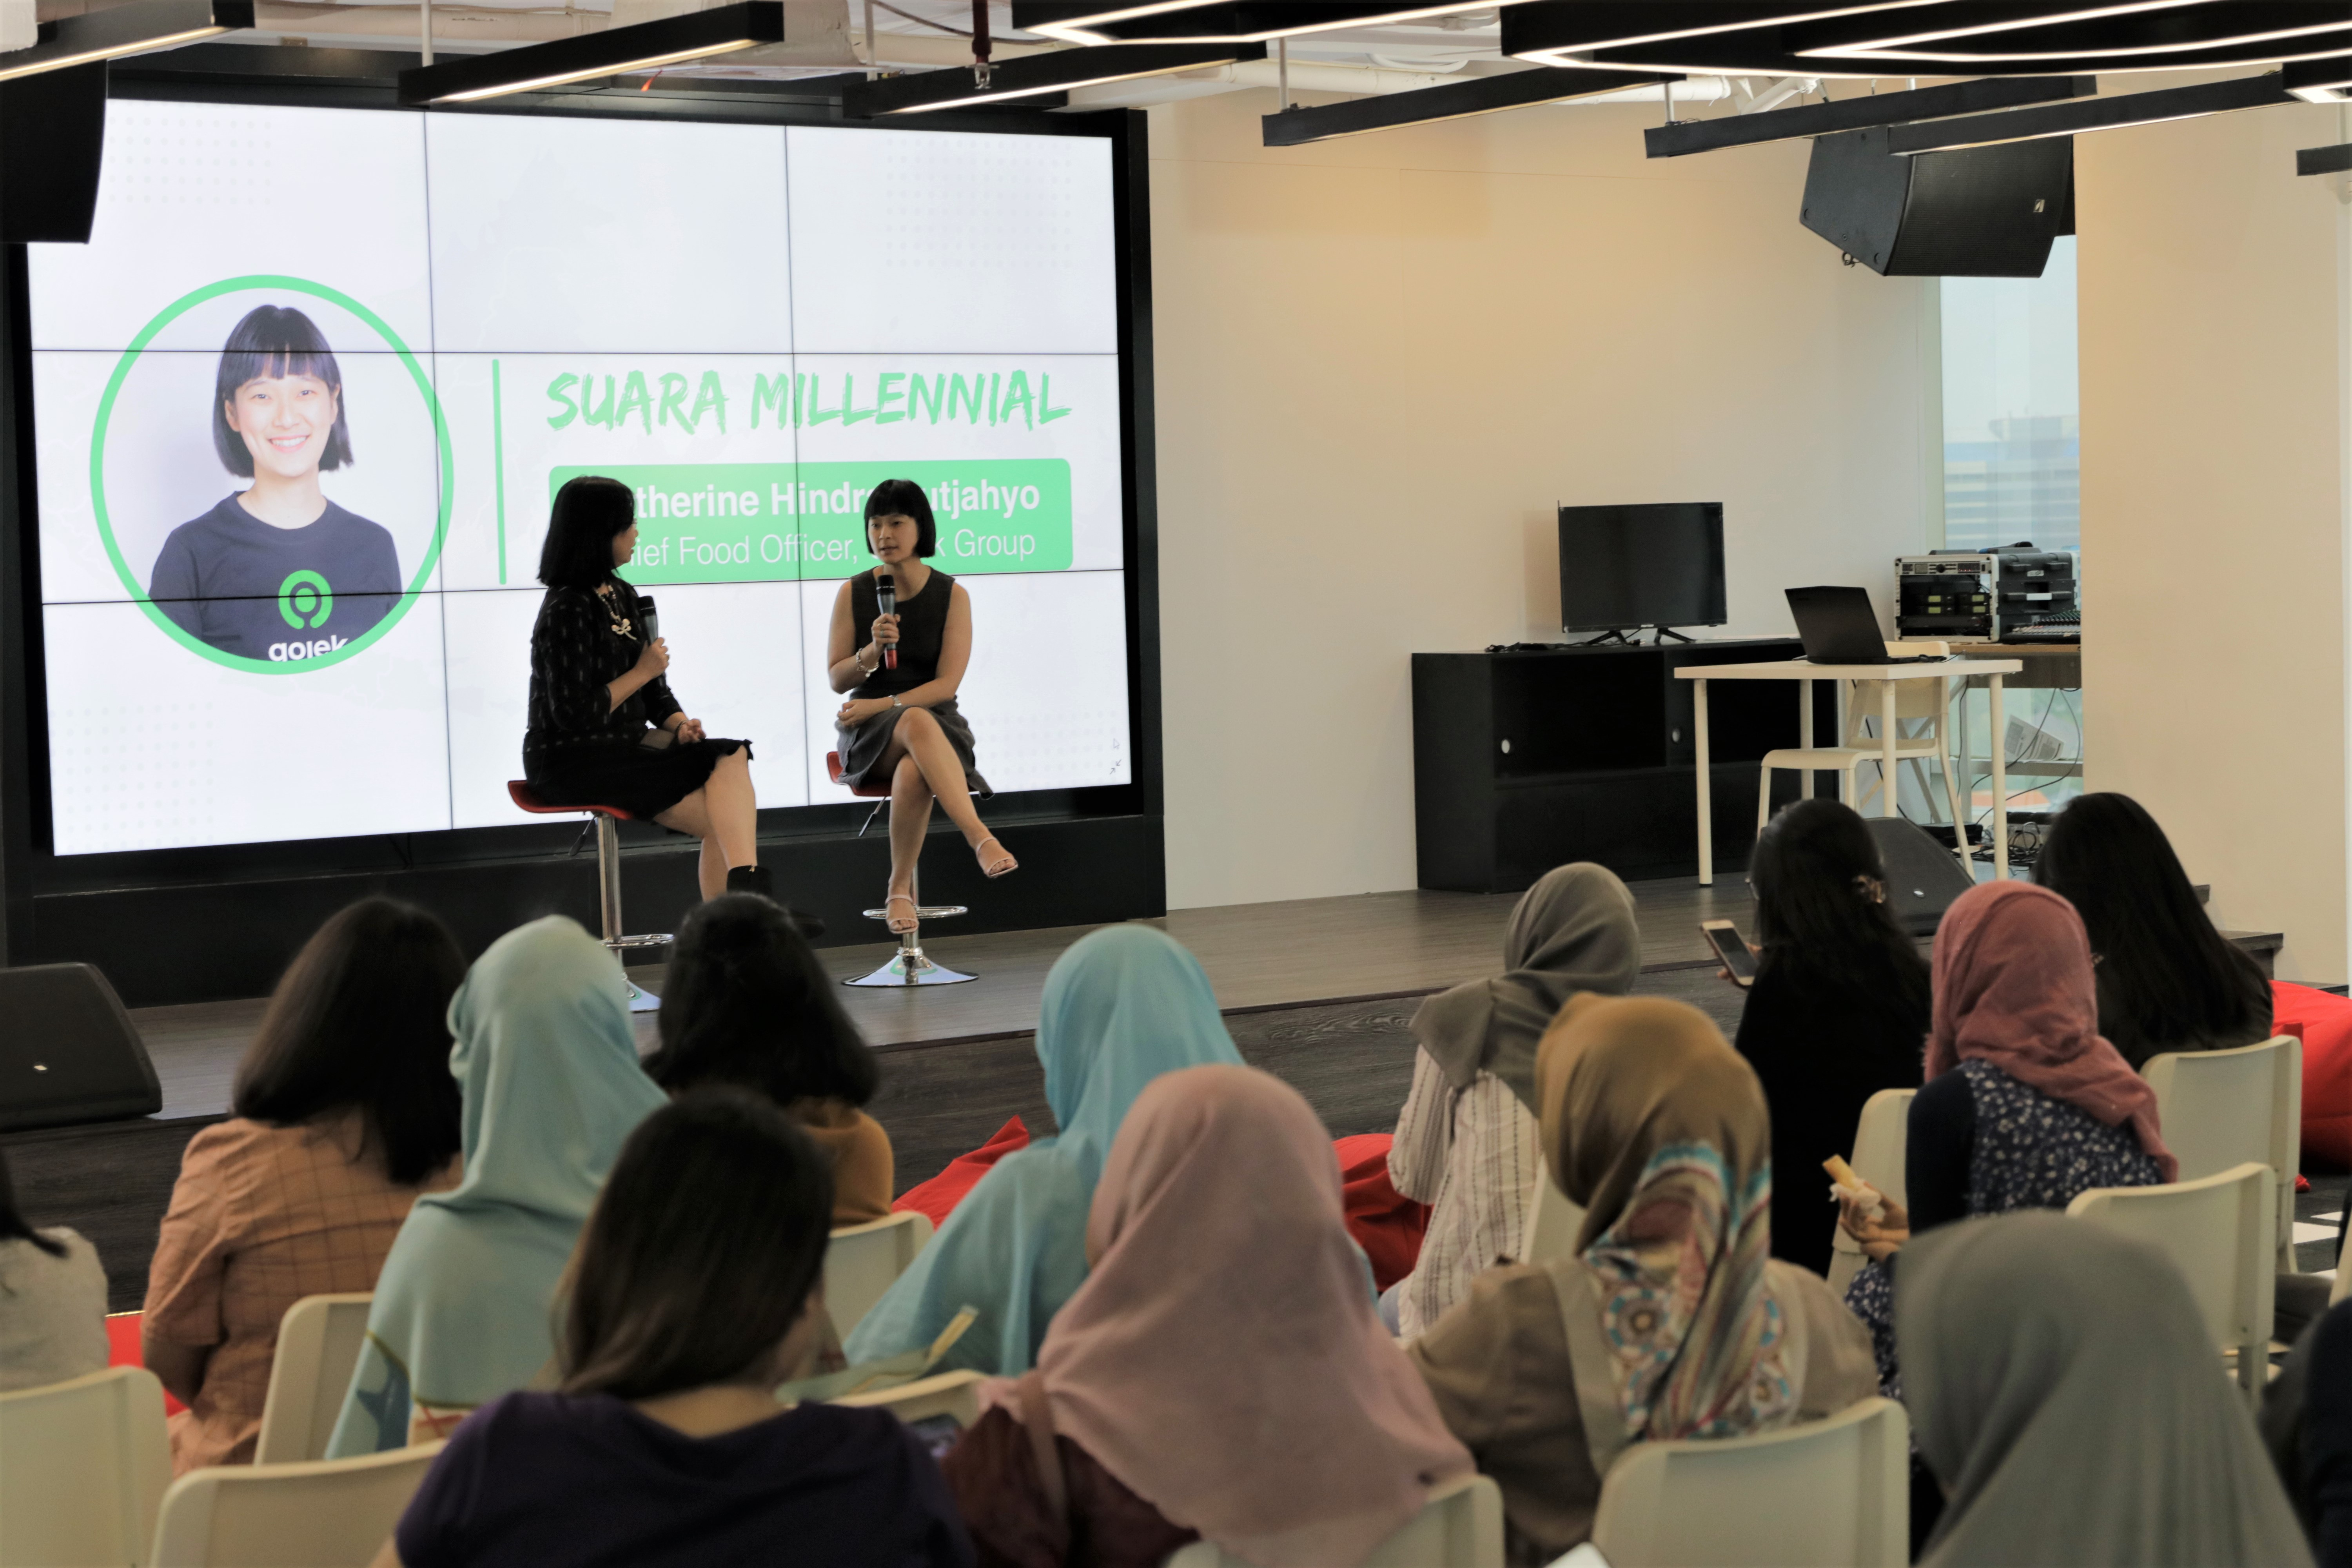 Catherine Hindra Sutjahyo at IDN Times Suara Millennial: Empowerment Should Touch All Elements